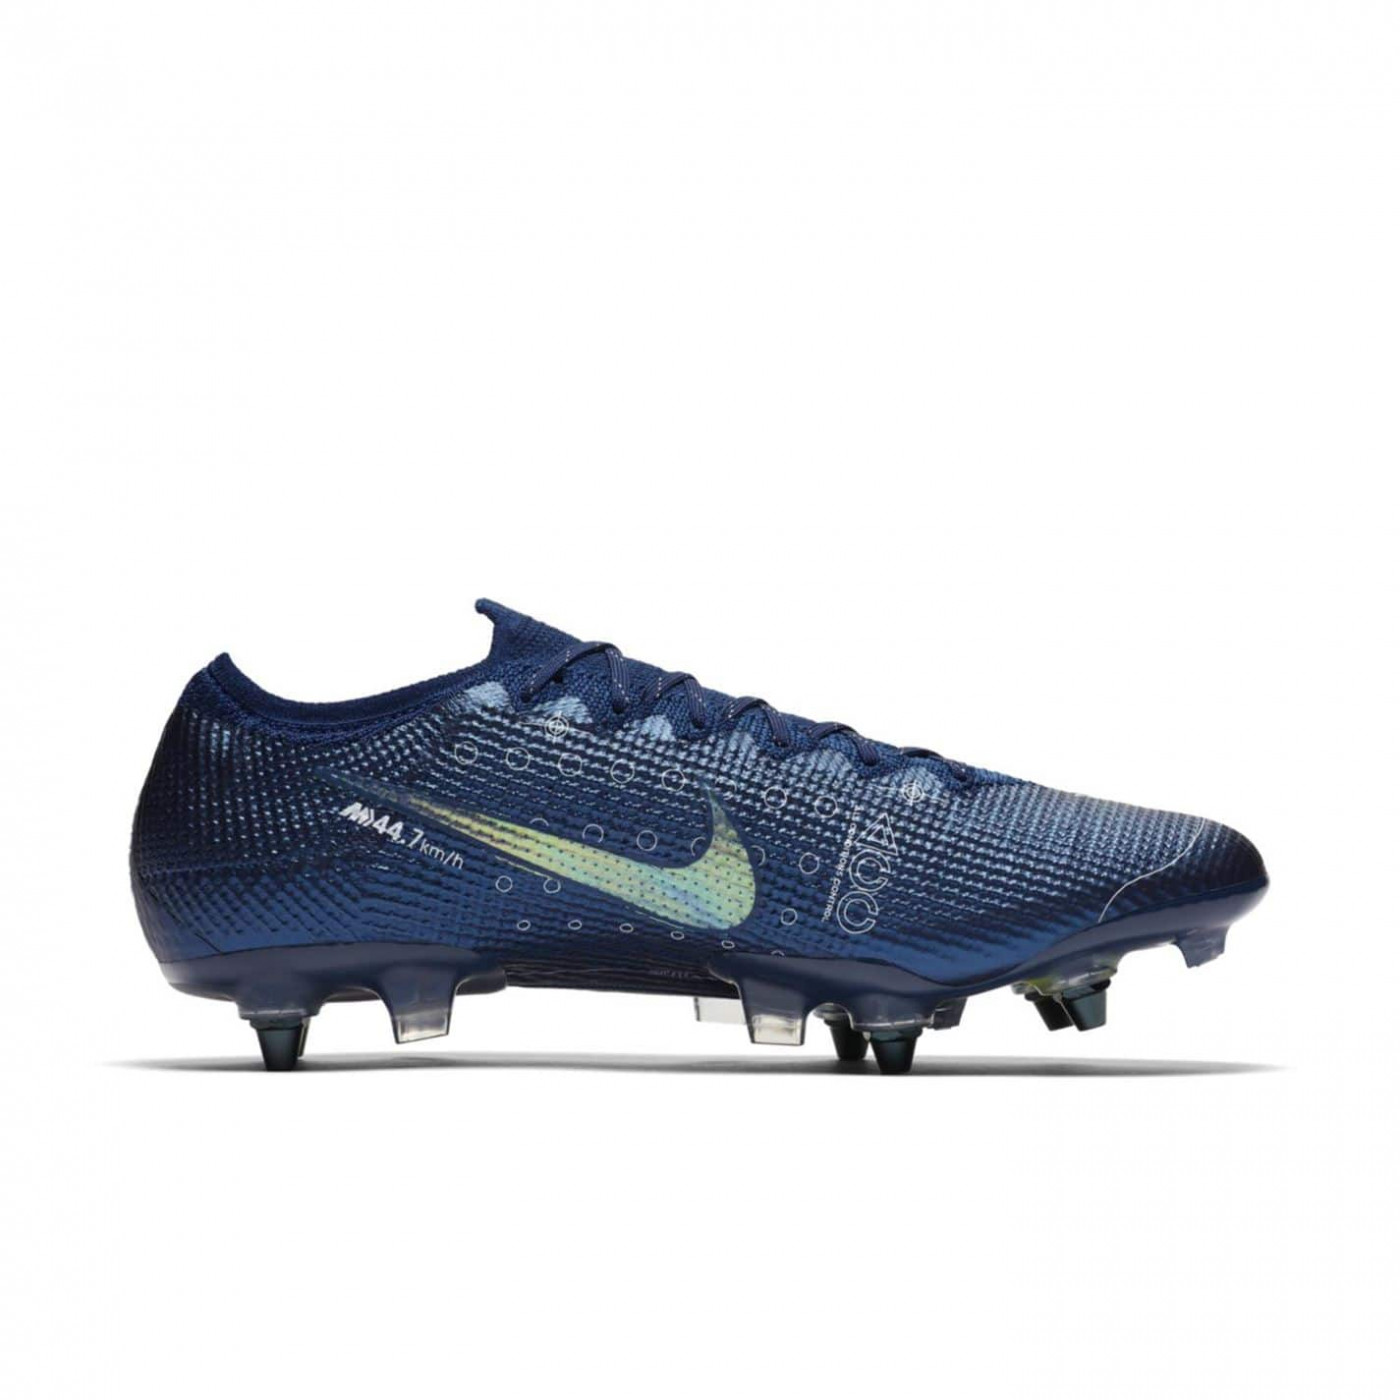 Nike Mercurial Vapor 13 Elite Sg-pro Anti-clog Traction Soft-ground Soccer Cleat